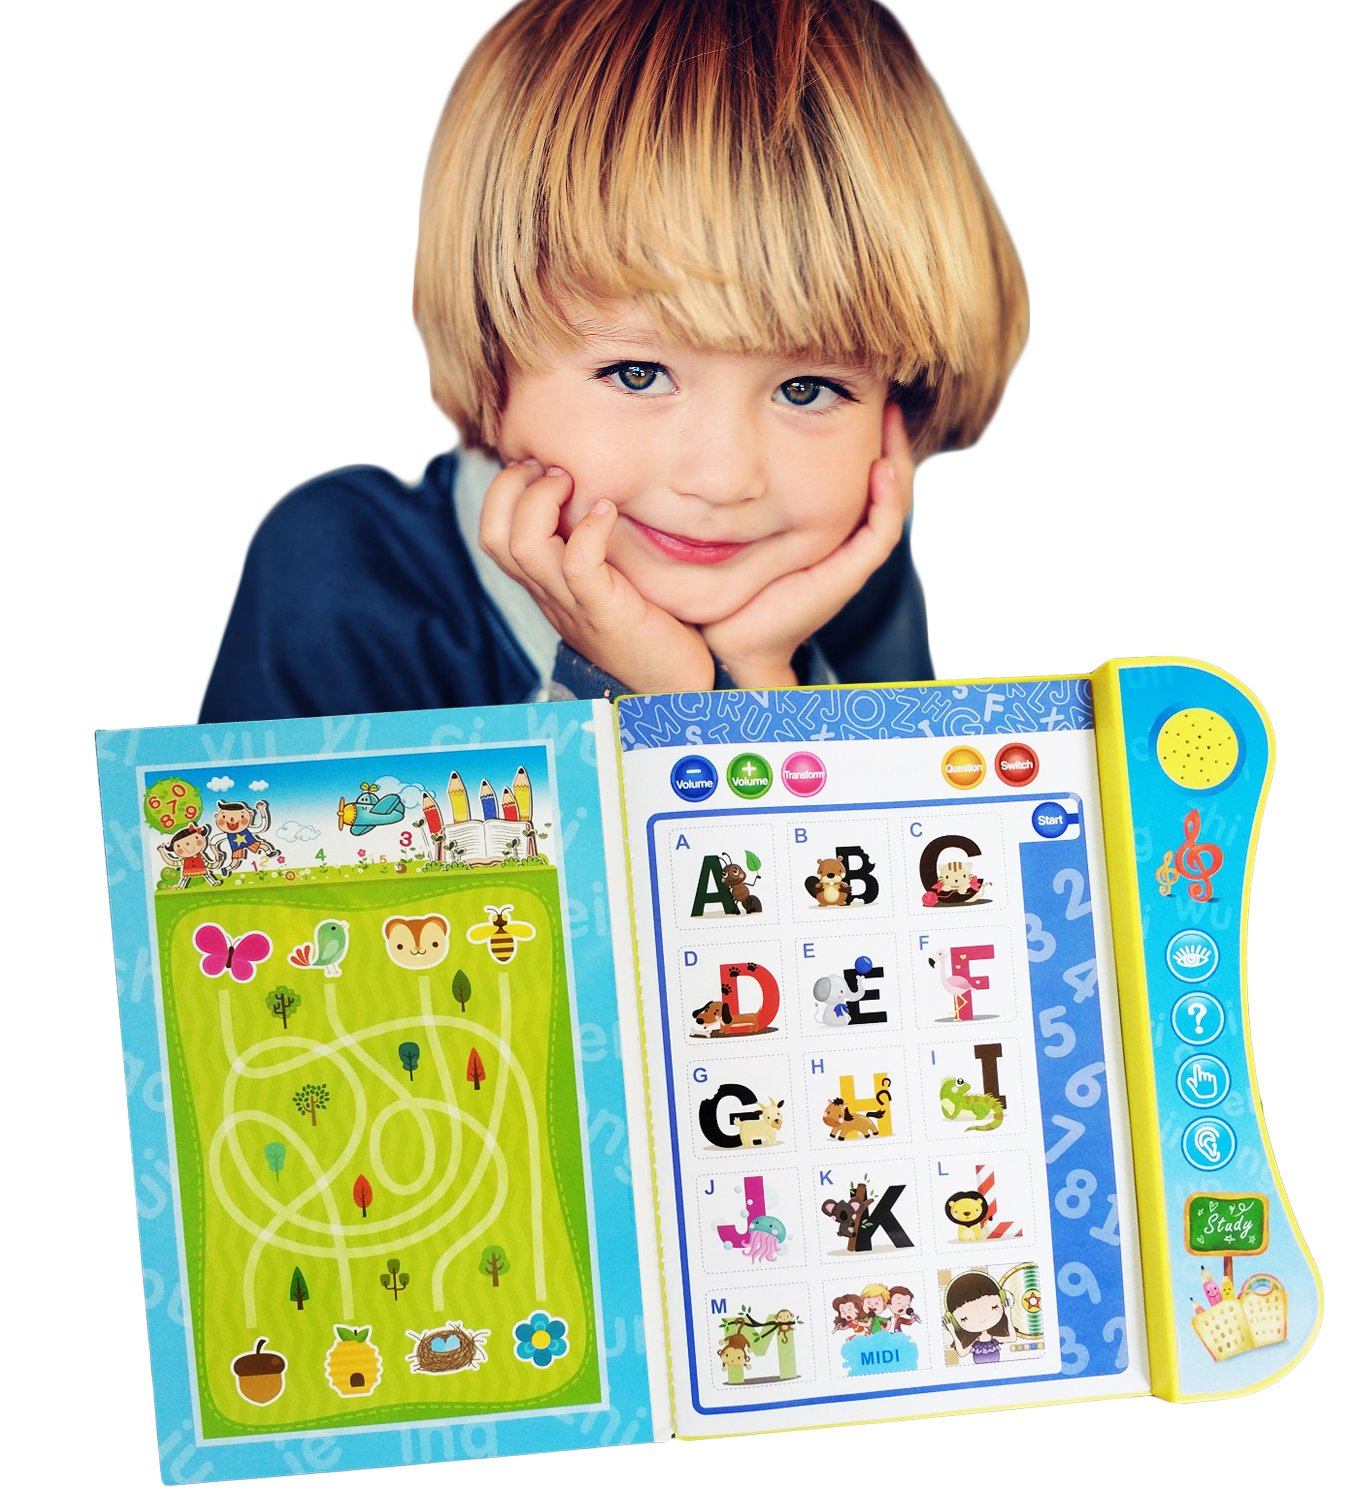 Wuao ABC Sound Book Touch Teach Lettets Words Learning Book, Fun Educational Toy, Learning Activities English Alphabet, Words, Numbers, Animals, Fruit, Vehicle Toddlers, Preschooler